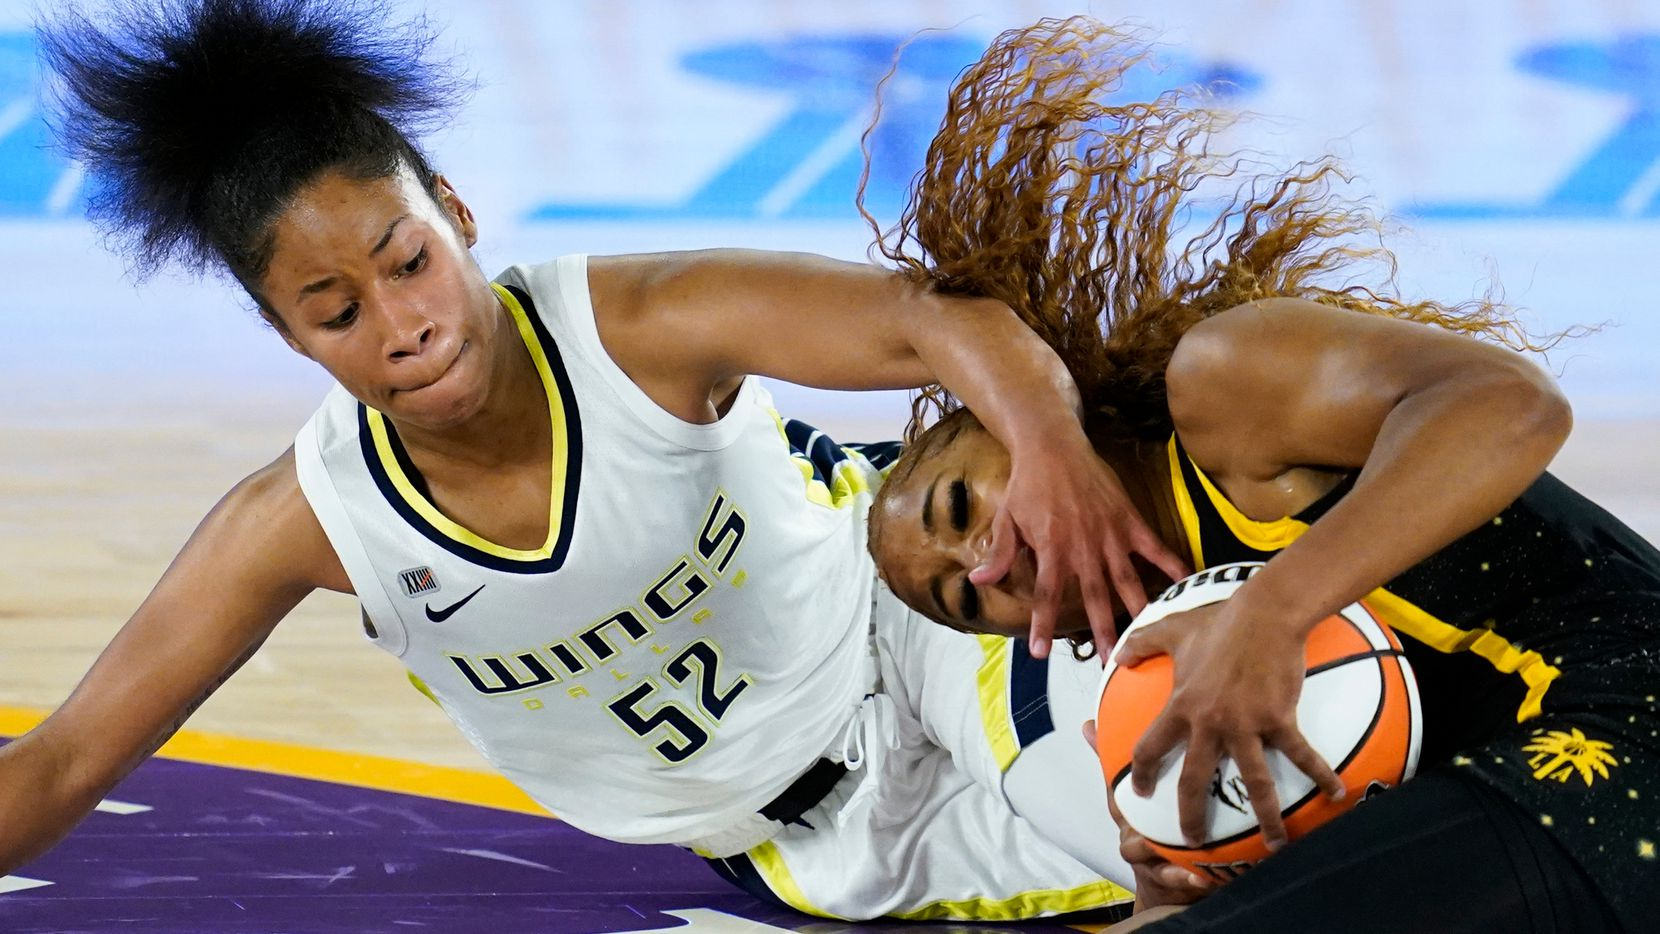 Dallas Wings guard Tyasha Harris (52) covers the face of Los Angeles Sparks guard Te'a Cooper (2) while reaching for the ball on the floor during the second quarter of a WBNA basketball game Friday, May 14, 2021, in Los Angeles.